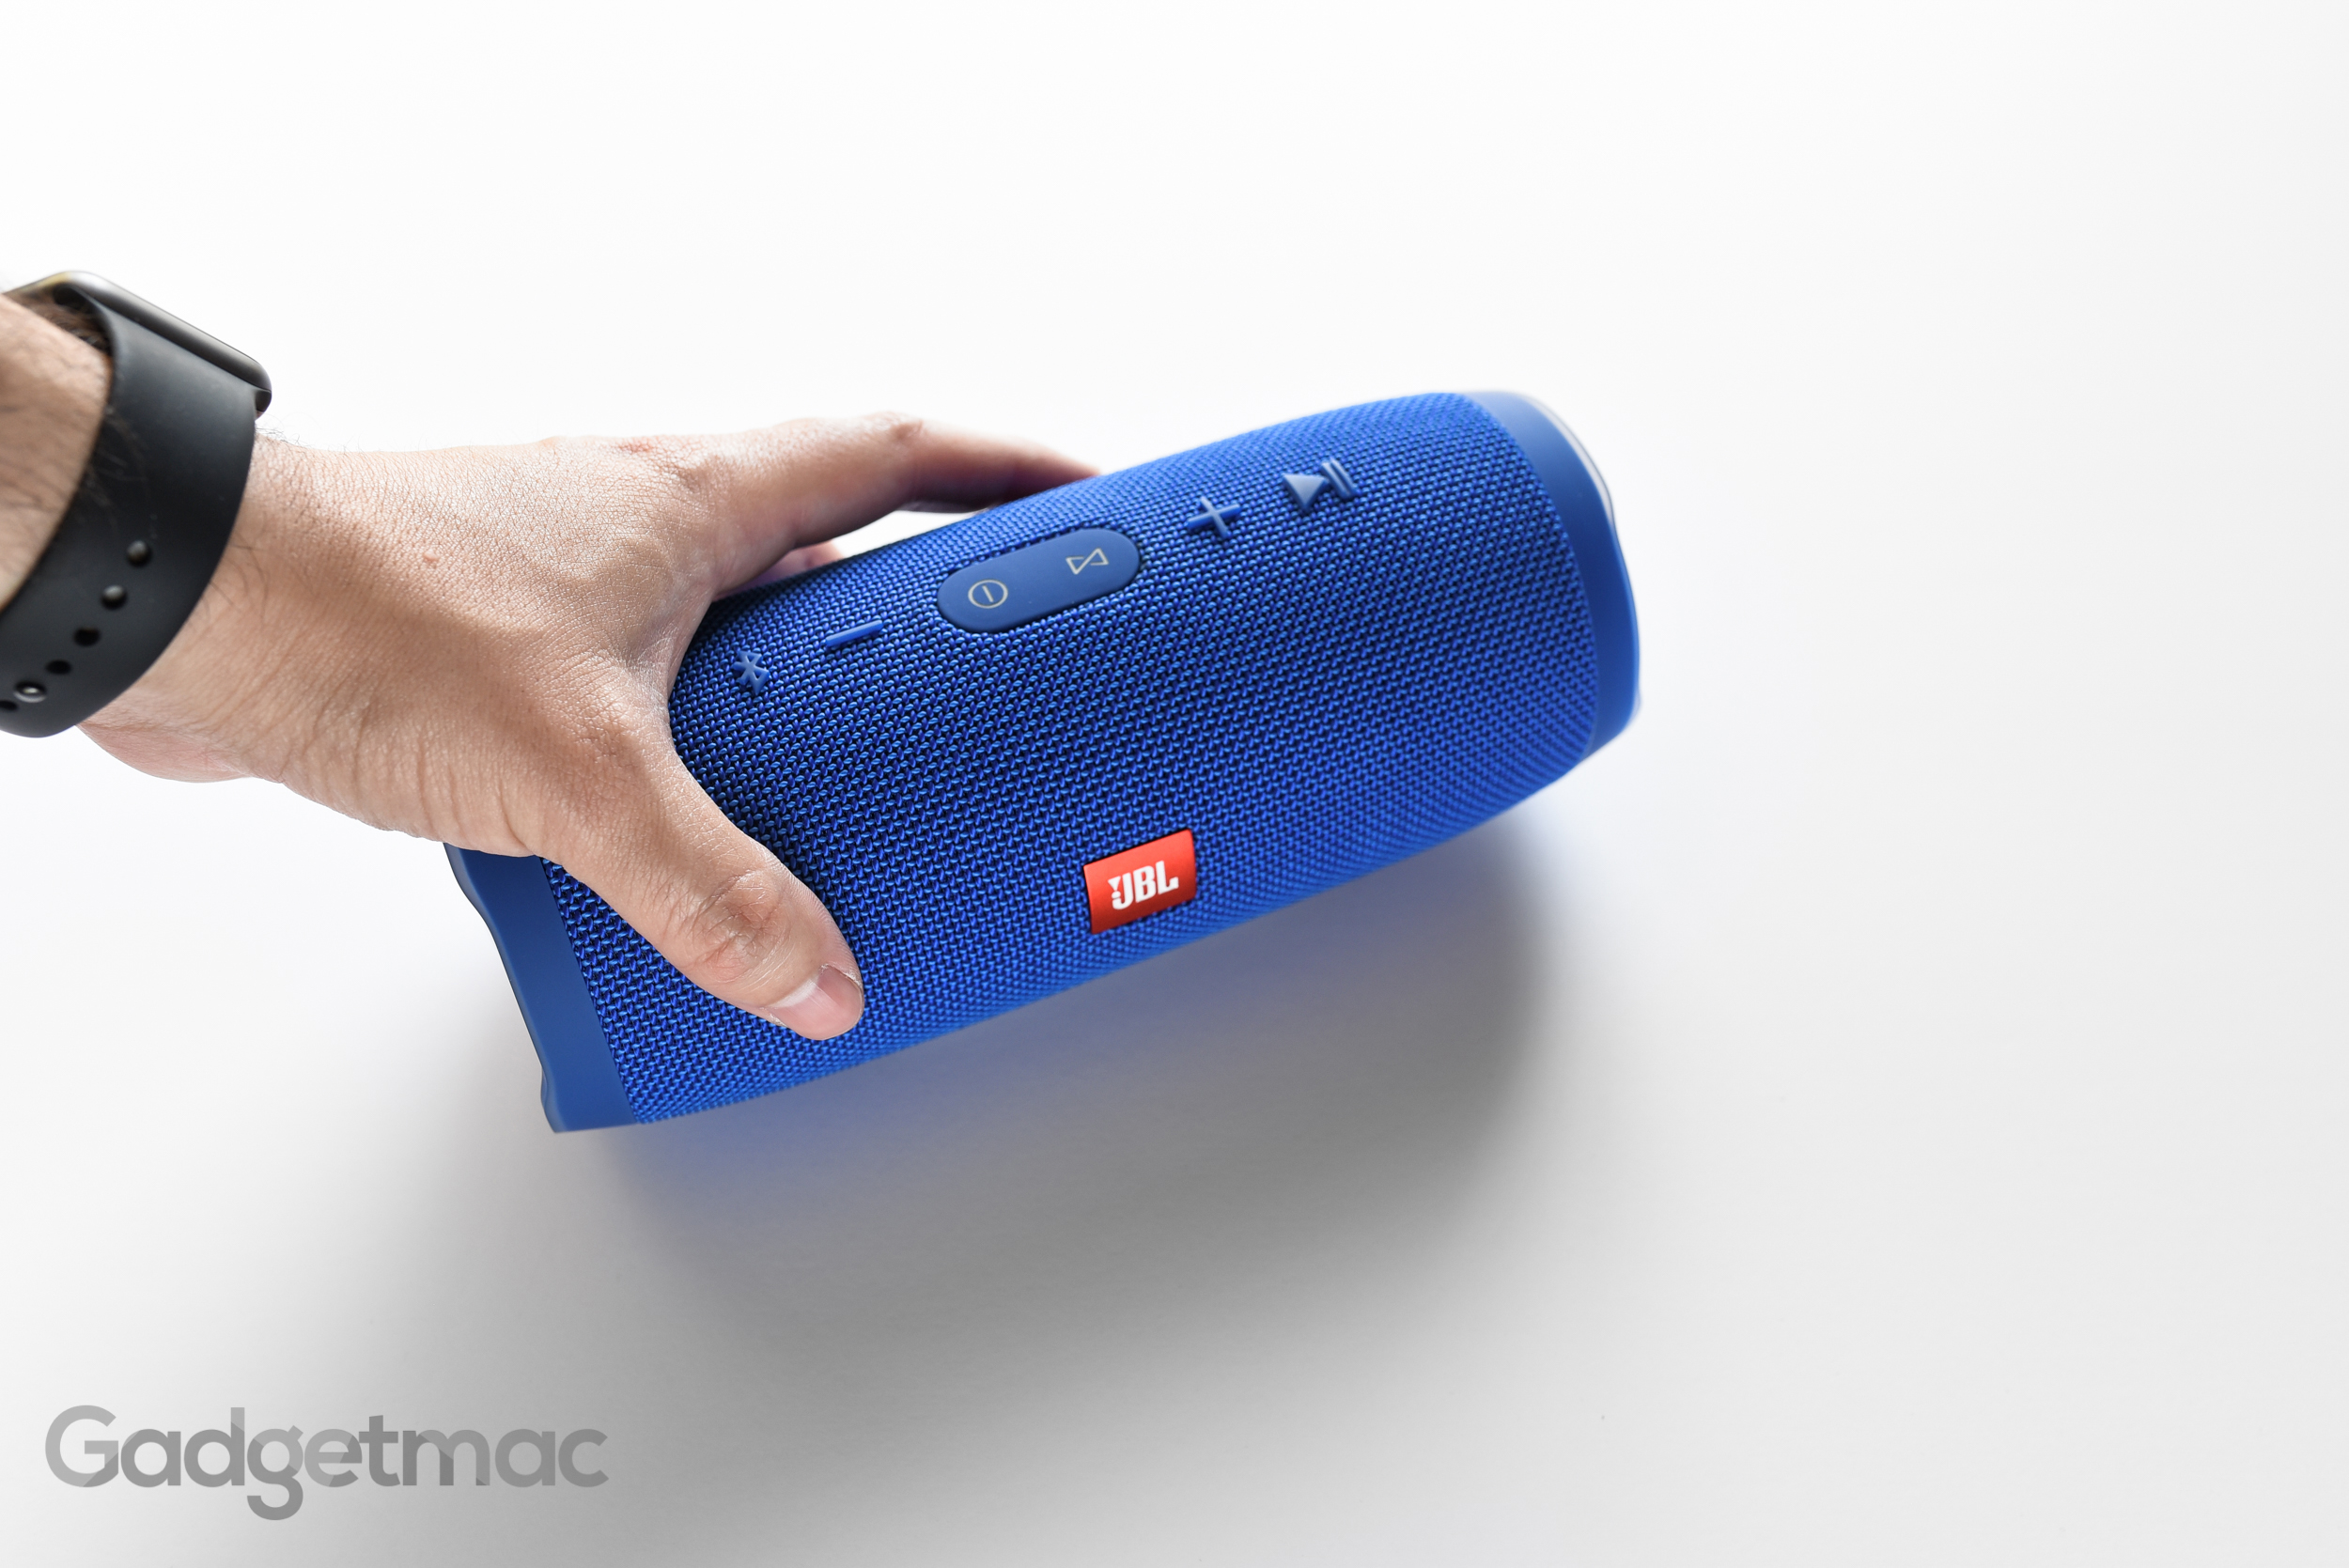 jbl-charge-3-portable-speaker-4.jpg